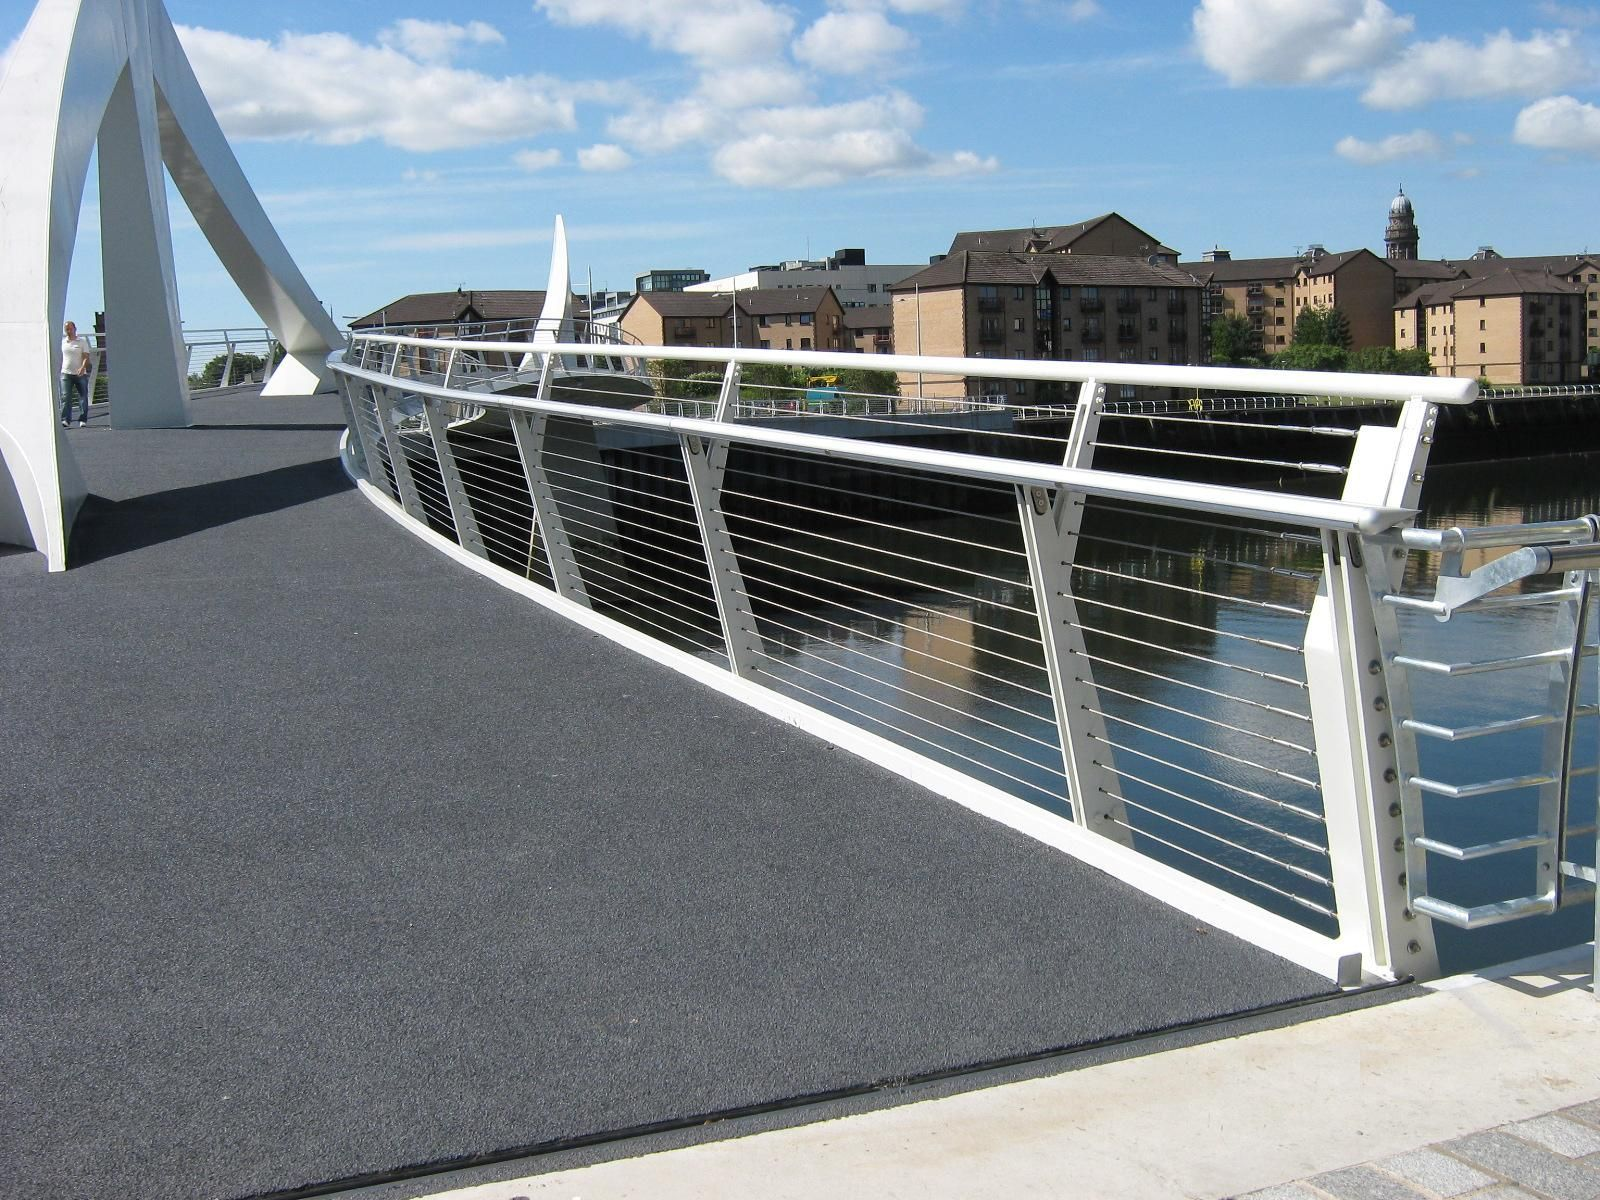 Our Stainless Steel Wire Ropes Being Used For A Bridge Balustrade Balustrade Balustrading Mmaarchitectu In 2020 Stainless Steel Wire Pedestrian Bridge Bridge Design